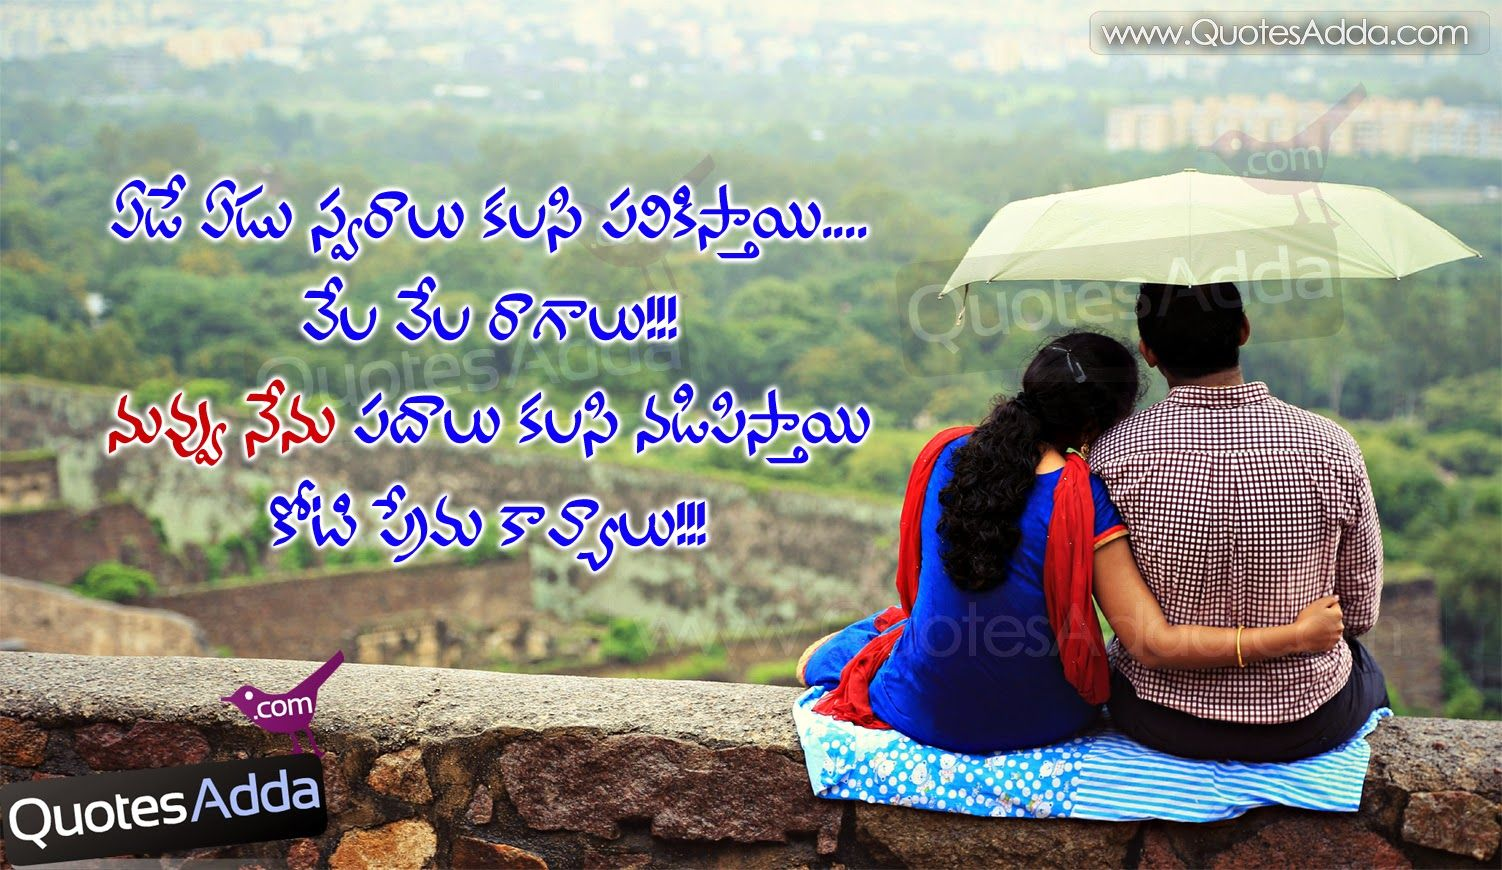 Telugu Love Quotes Fascinating Funny Love Proposal Quotes Best Telugu Beautiful Love Quotations